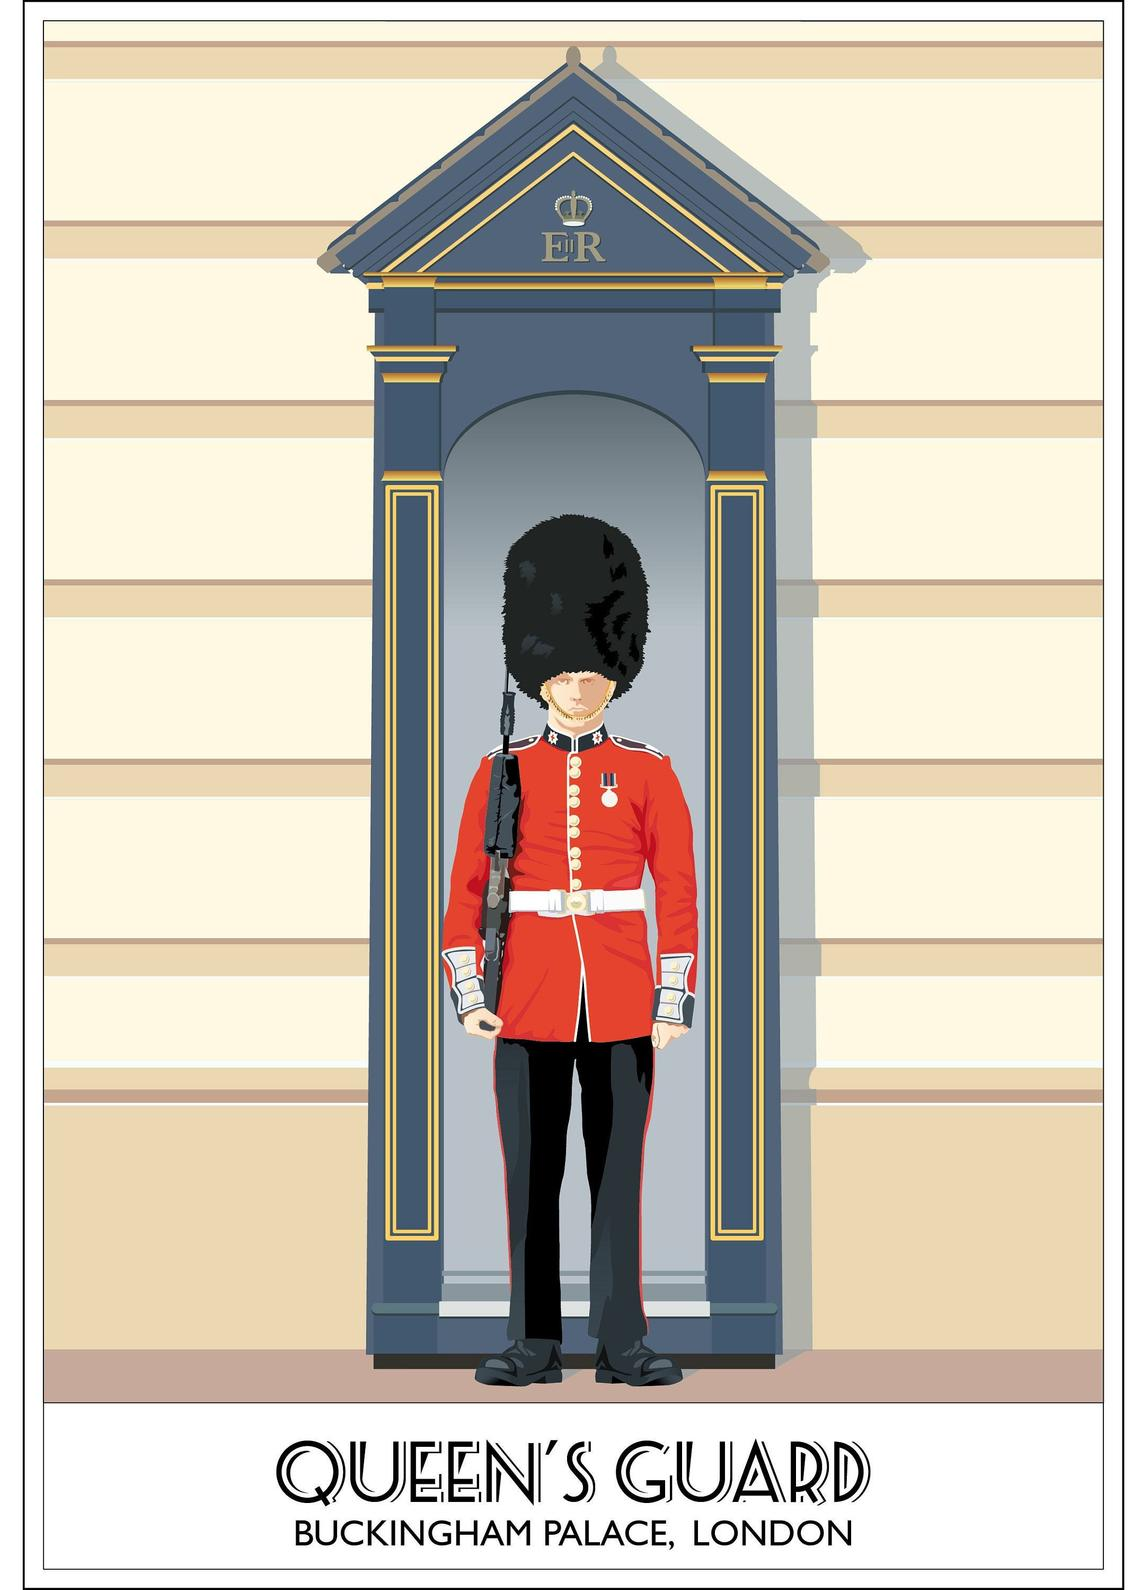 The Queen's Guard, Buckingham Palace, London